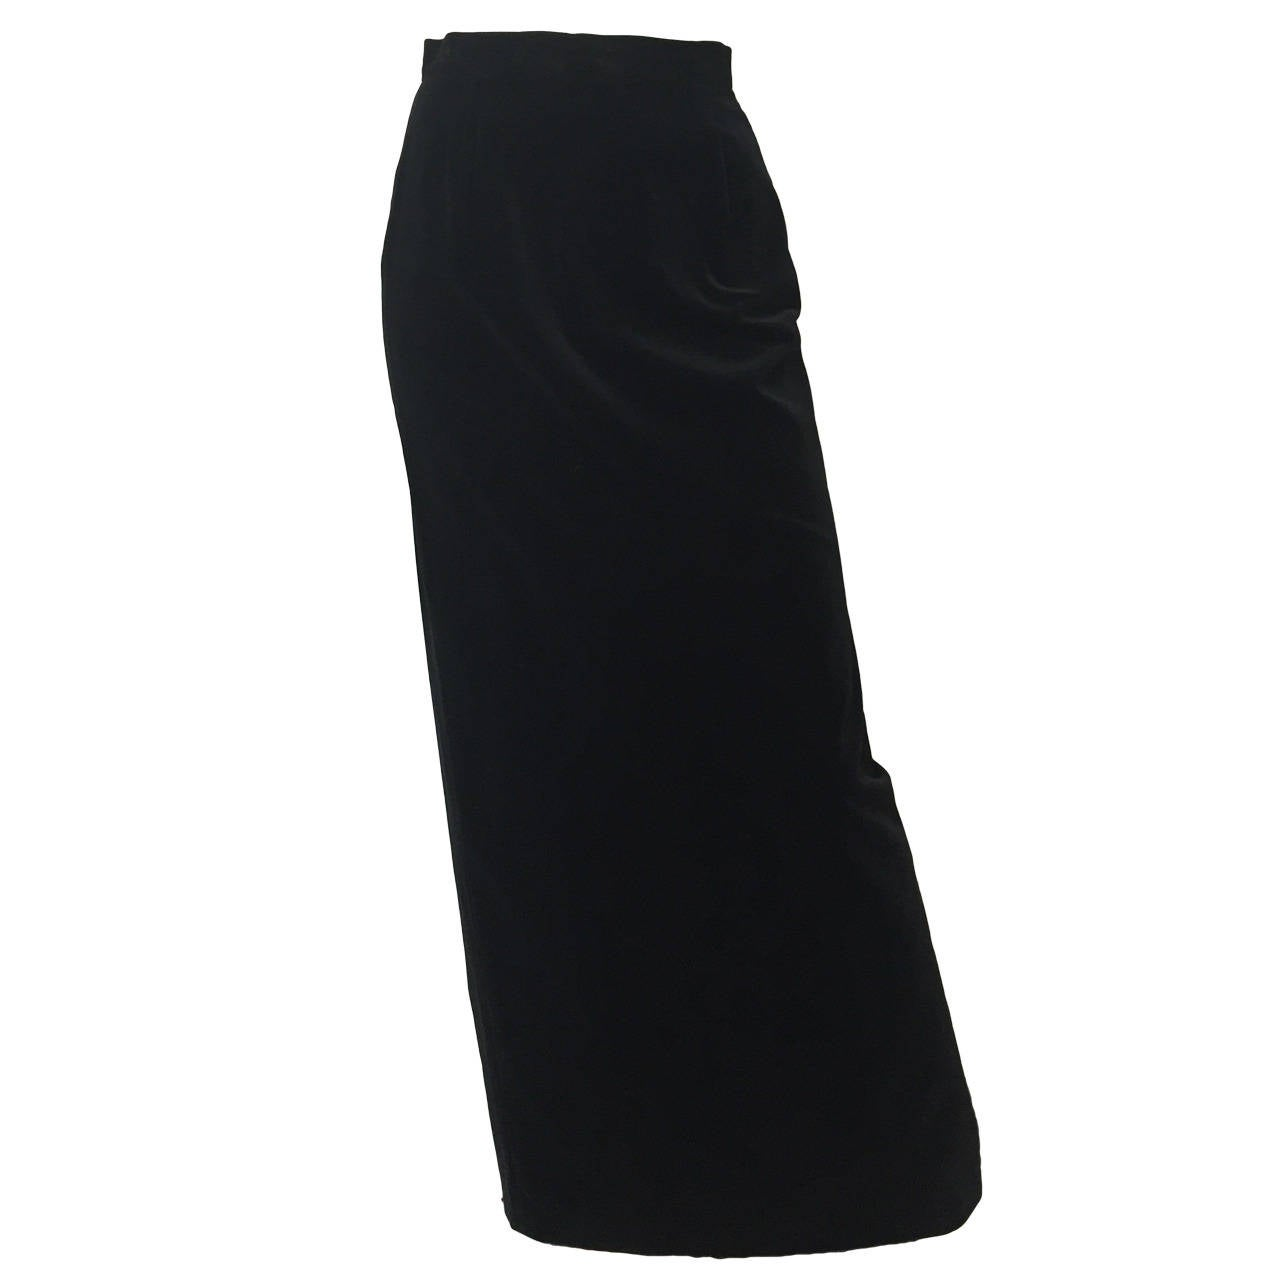 5d67f0d1fa Caroline Charles London for Neiman Marcus 1980s Long Black Velvet Skirt  Size 4. For Sale